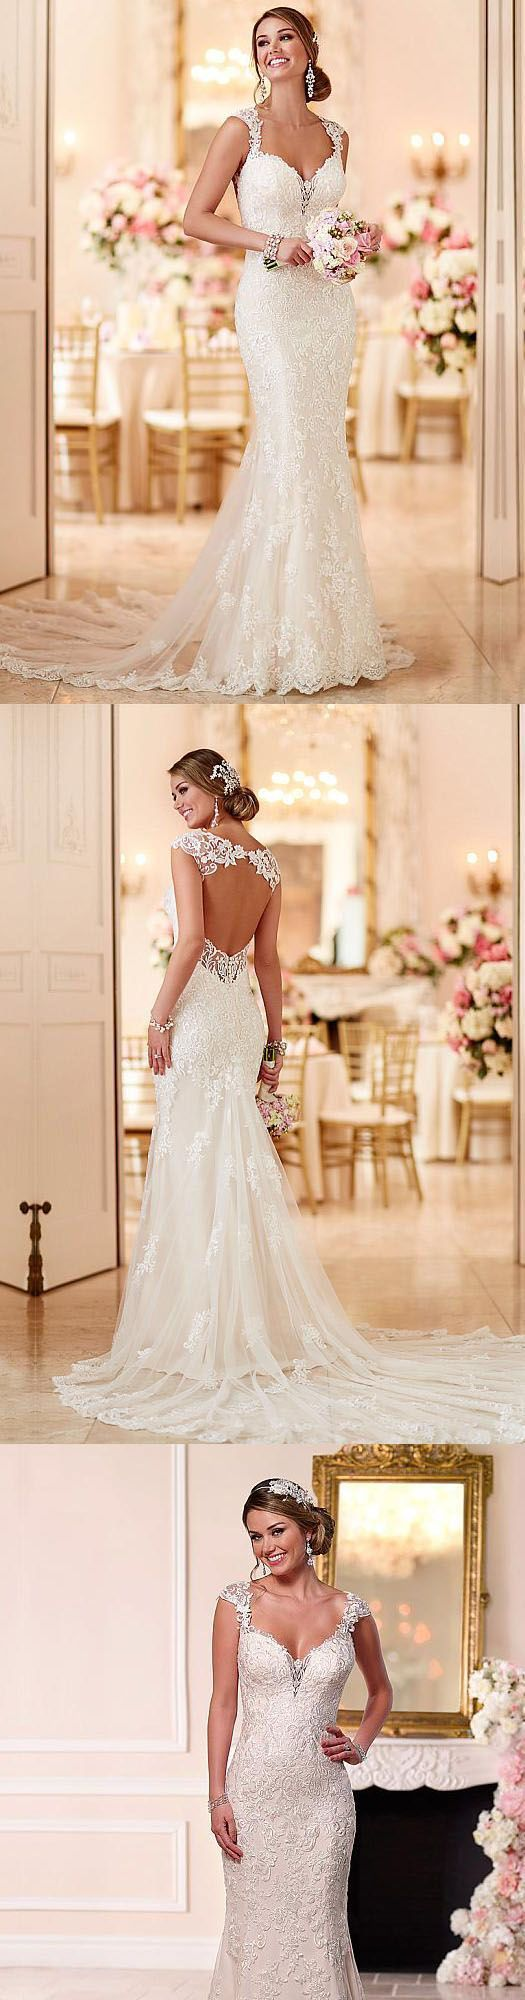 Best 25 fitted wedding dresses ideas on pinterest for Halloween wedding dresses plus size